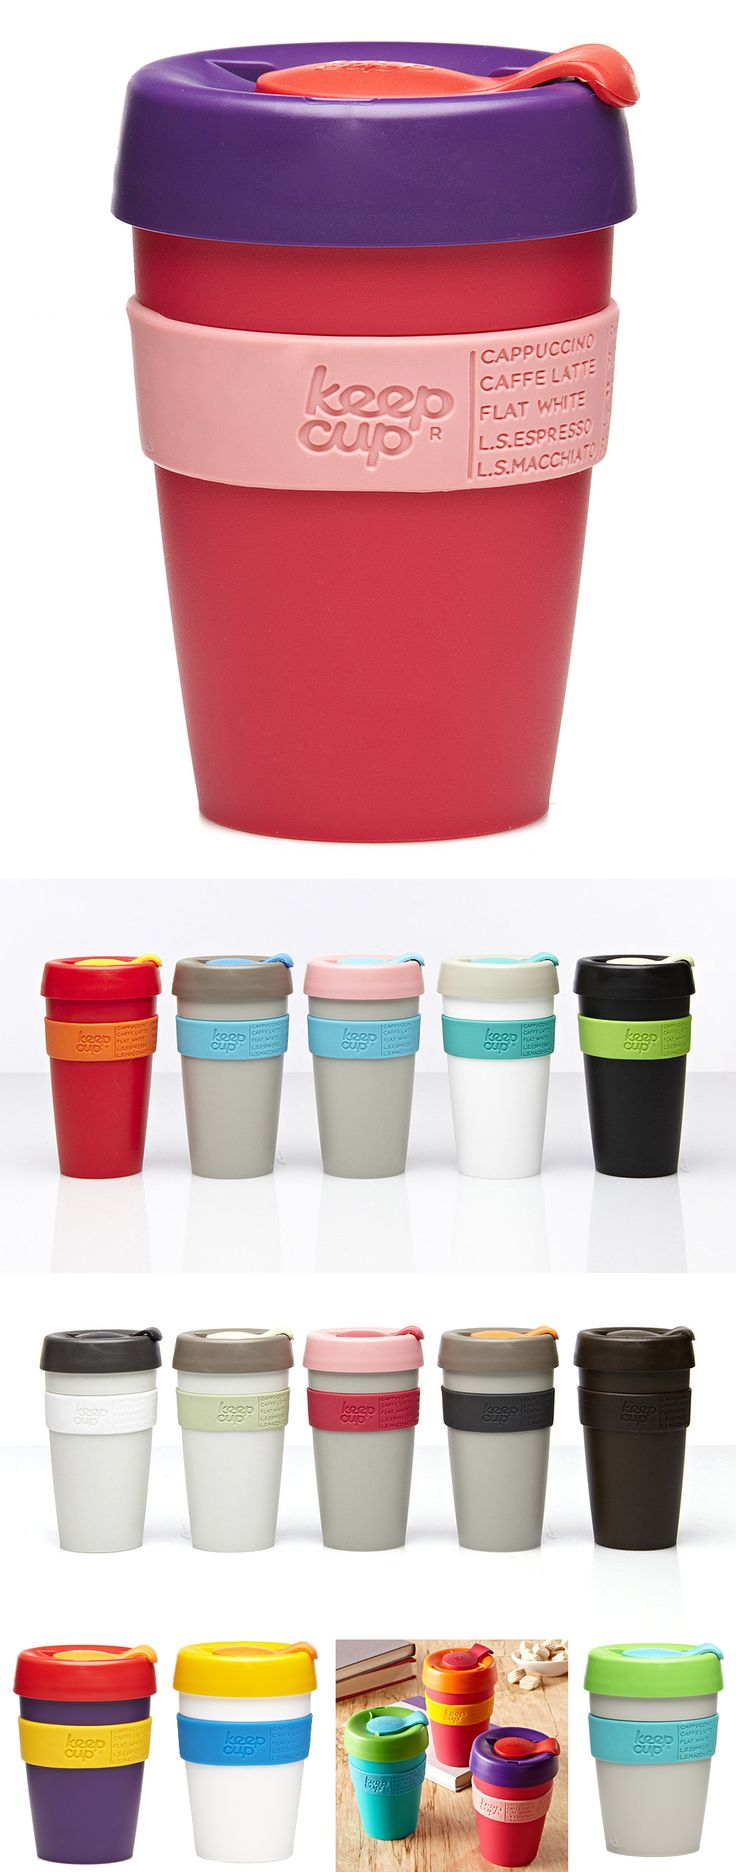 Keep Cup // Barista-approved reusable travel coffee mug w/ infinite color combos, splash-proof lid, 100% recyclable, BPA-free & dishwasher-safe